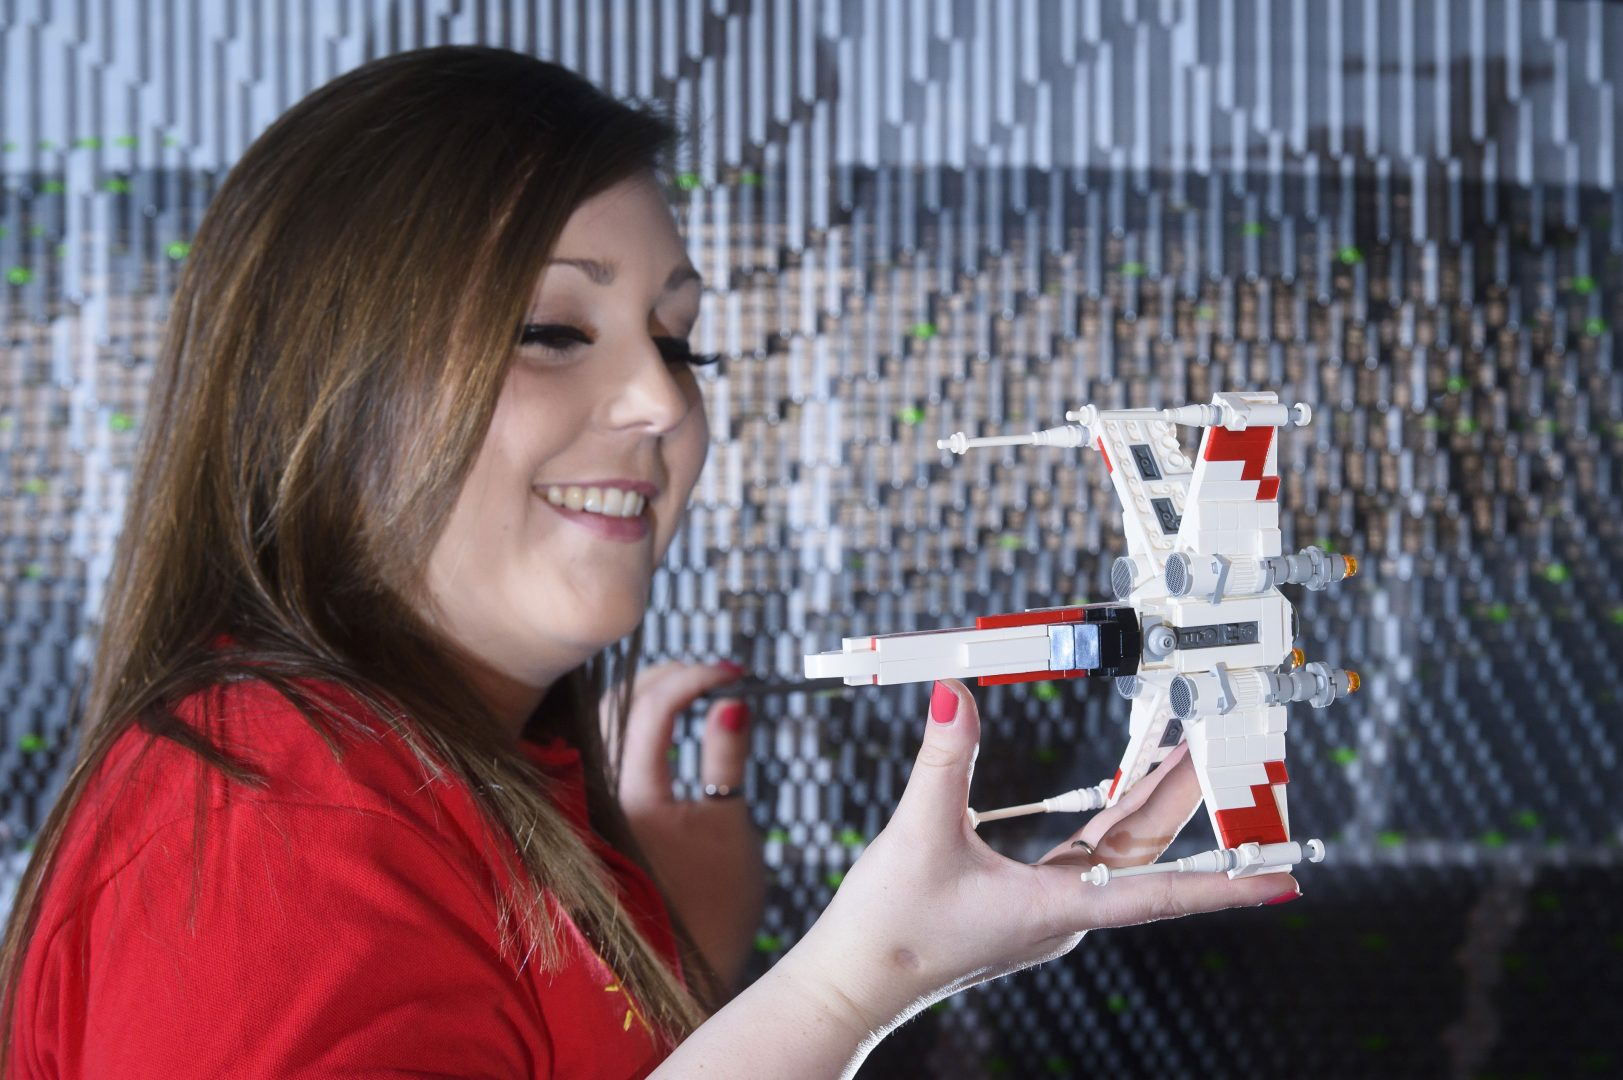 ONE OF THE WORLD'S BIGGEST EVER LEGO® STAR WARS™ MODELS INSTALLED AT THE LEGOLAND® WINDSOR RESORT. LAST PIECES PUT IN PLACE IN NEW LEGO® Star Wars™ Miniland Model Display Finale.  LEGOLAND® Model Maker Phoebe Rumbol, puts the finishing touches to some of the Rebel Alliance ships featured in a new finale scene to the Resort's LEGO® Star Wars™ Miniland Model Display. This is one of the smaller elements to the 651,086 brick scene and the centre piece is one of the most impressive and biggest LEGO® Star Wars™ models ever created - a 500,000 brick LEGO® Star Wars™ recreation of The Death Star.   The models were installed in a mammoth operation that took three days as the massive new 2.4 metre wide, 3 metre high creation was carefully hoisted into position and the final bricks and scenes were put in place. The hefty 860kg perfectly spherical model took 15 Model Makers three months to build and guests can trigger special effects and bring the scene to life when it opens at the Resort on 11 March.